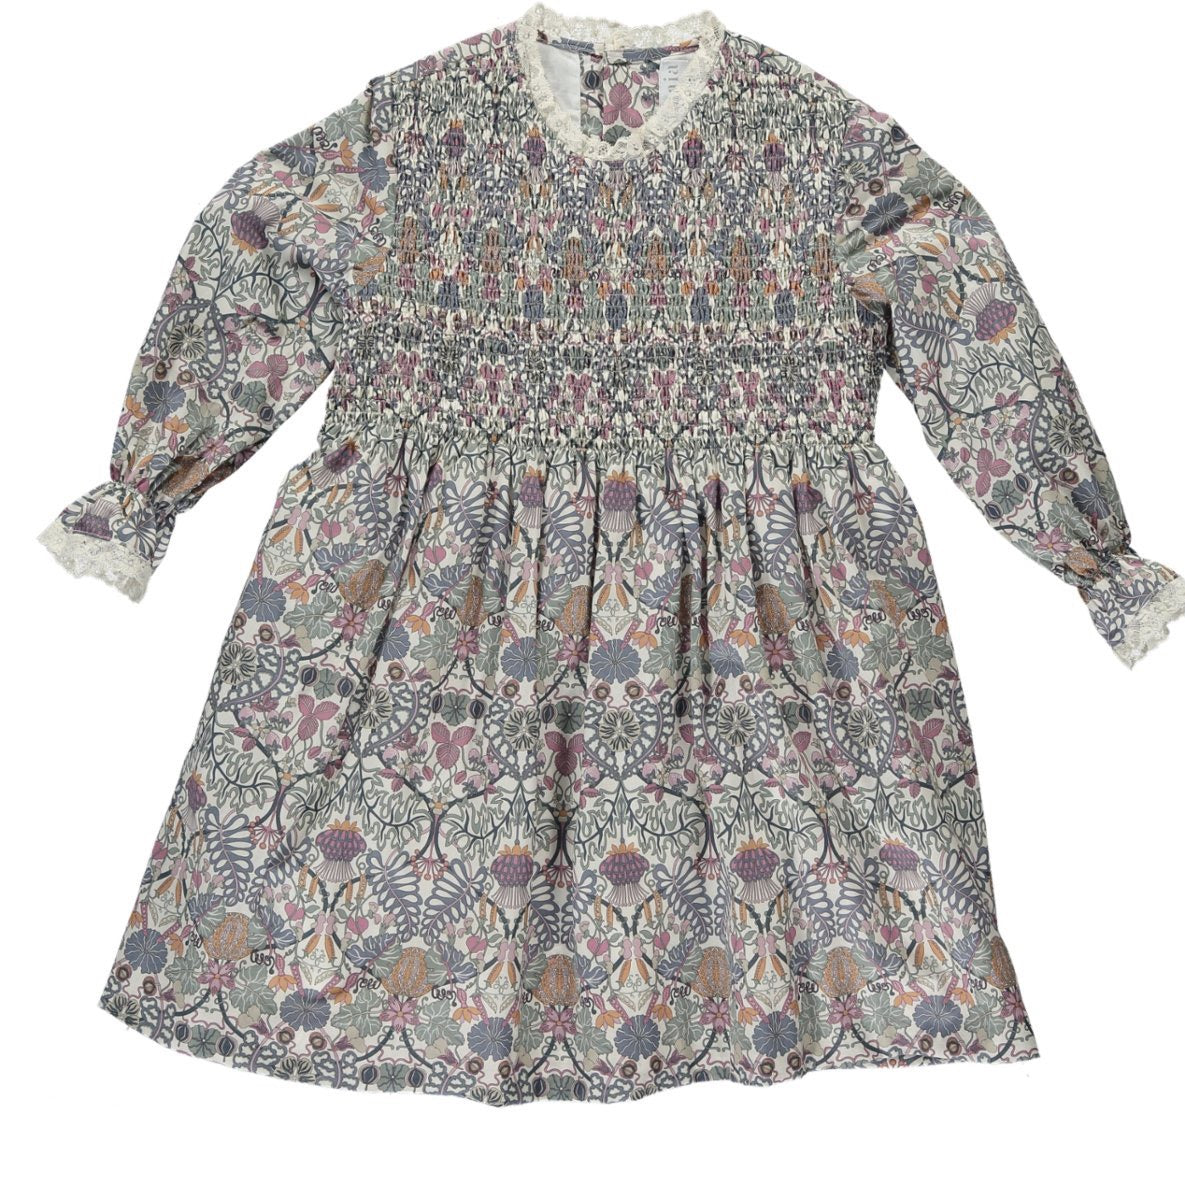 Laeticia Dress Lilac/Khaki Floral Liberty print